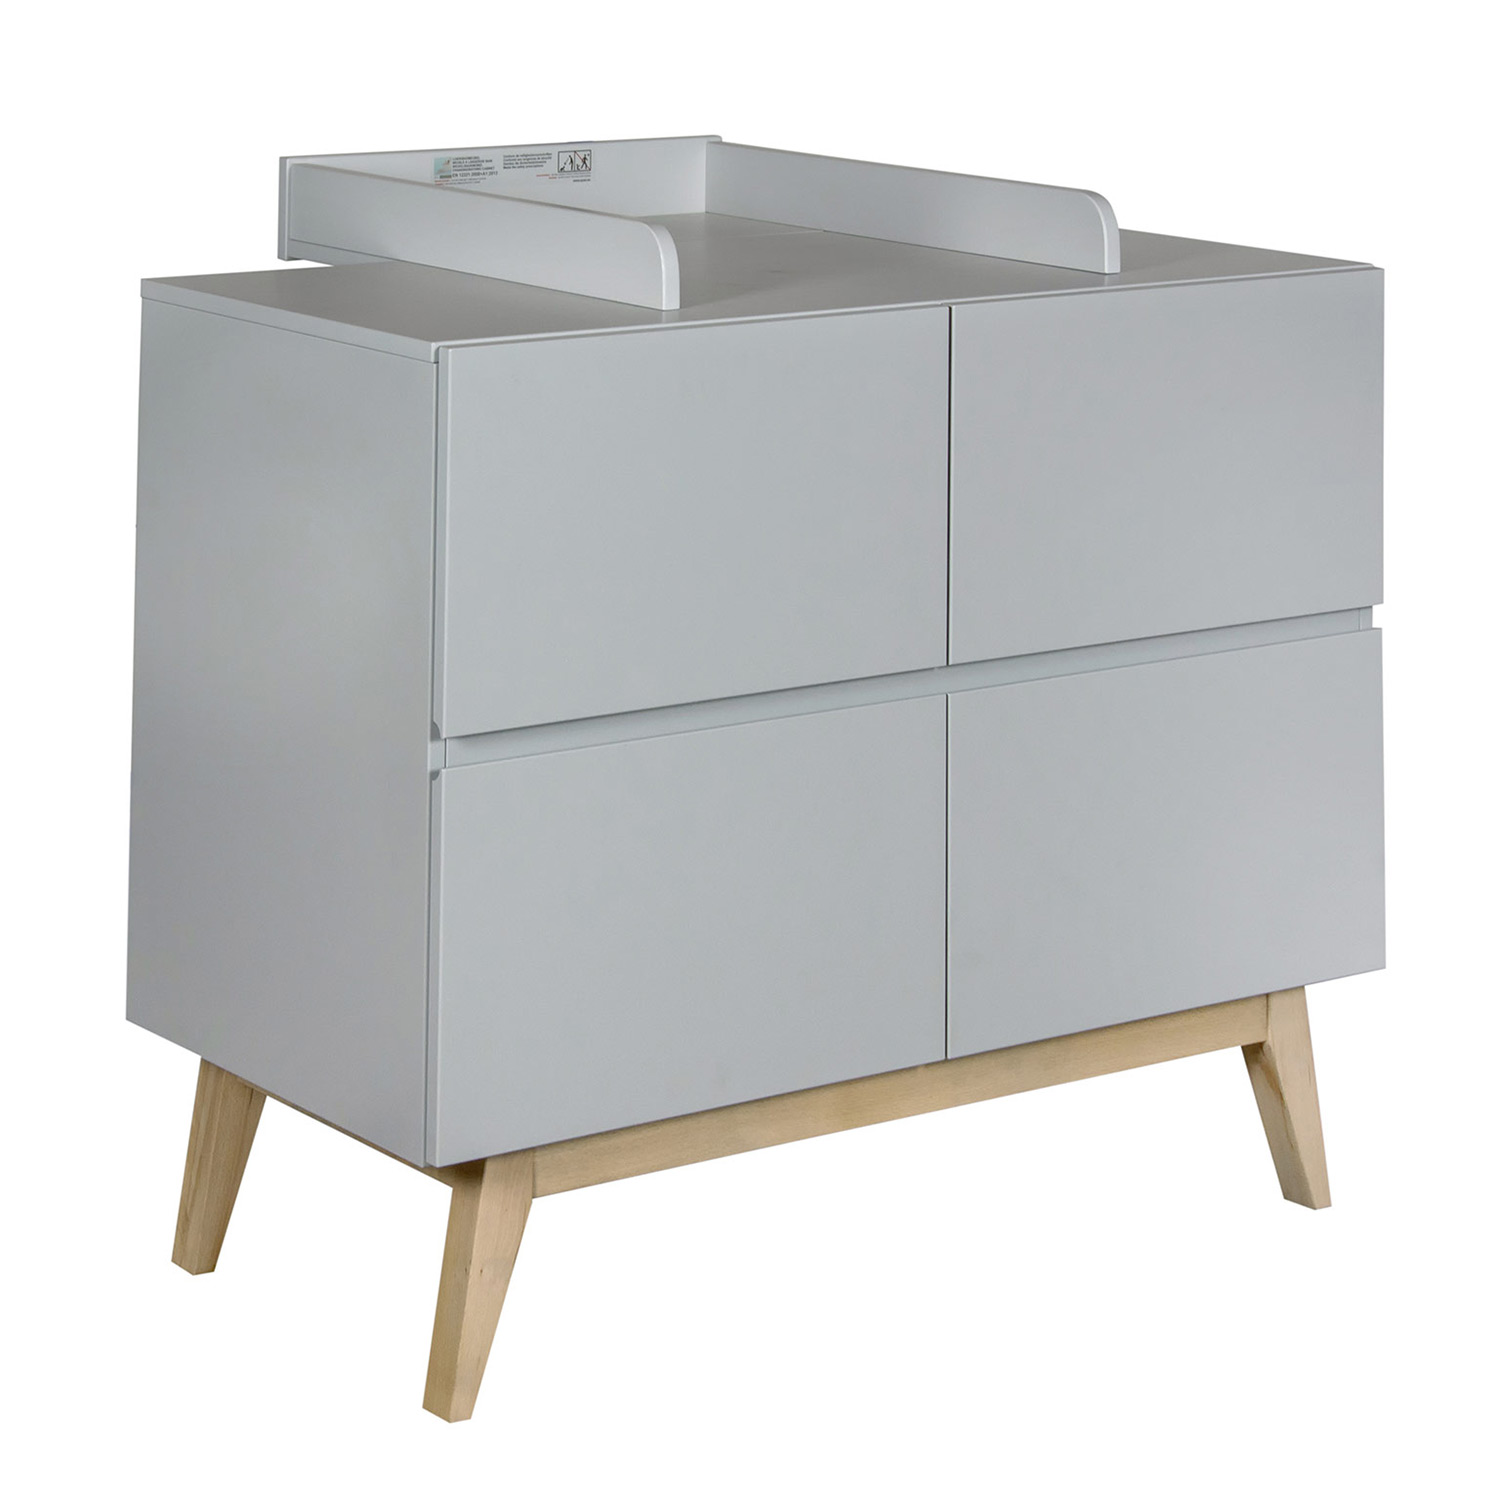 Quax Trendy Wickelaufsatz für Kommode Trendy, Griffin Grey